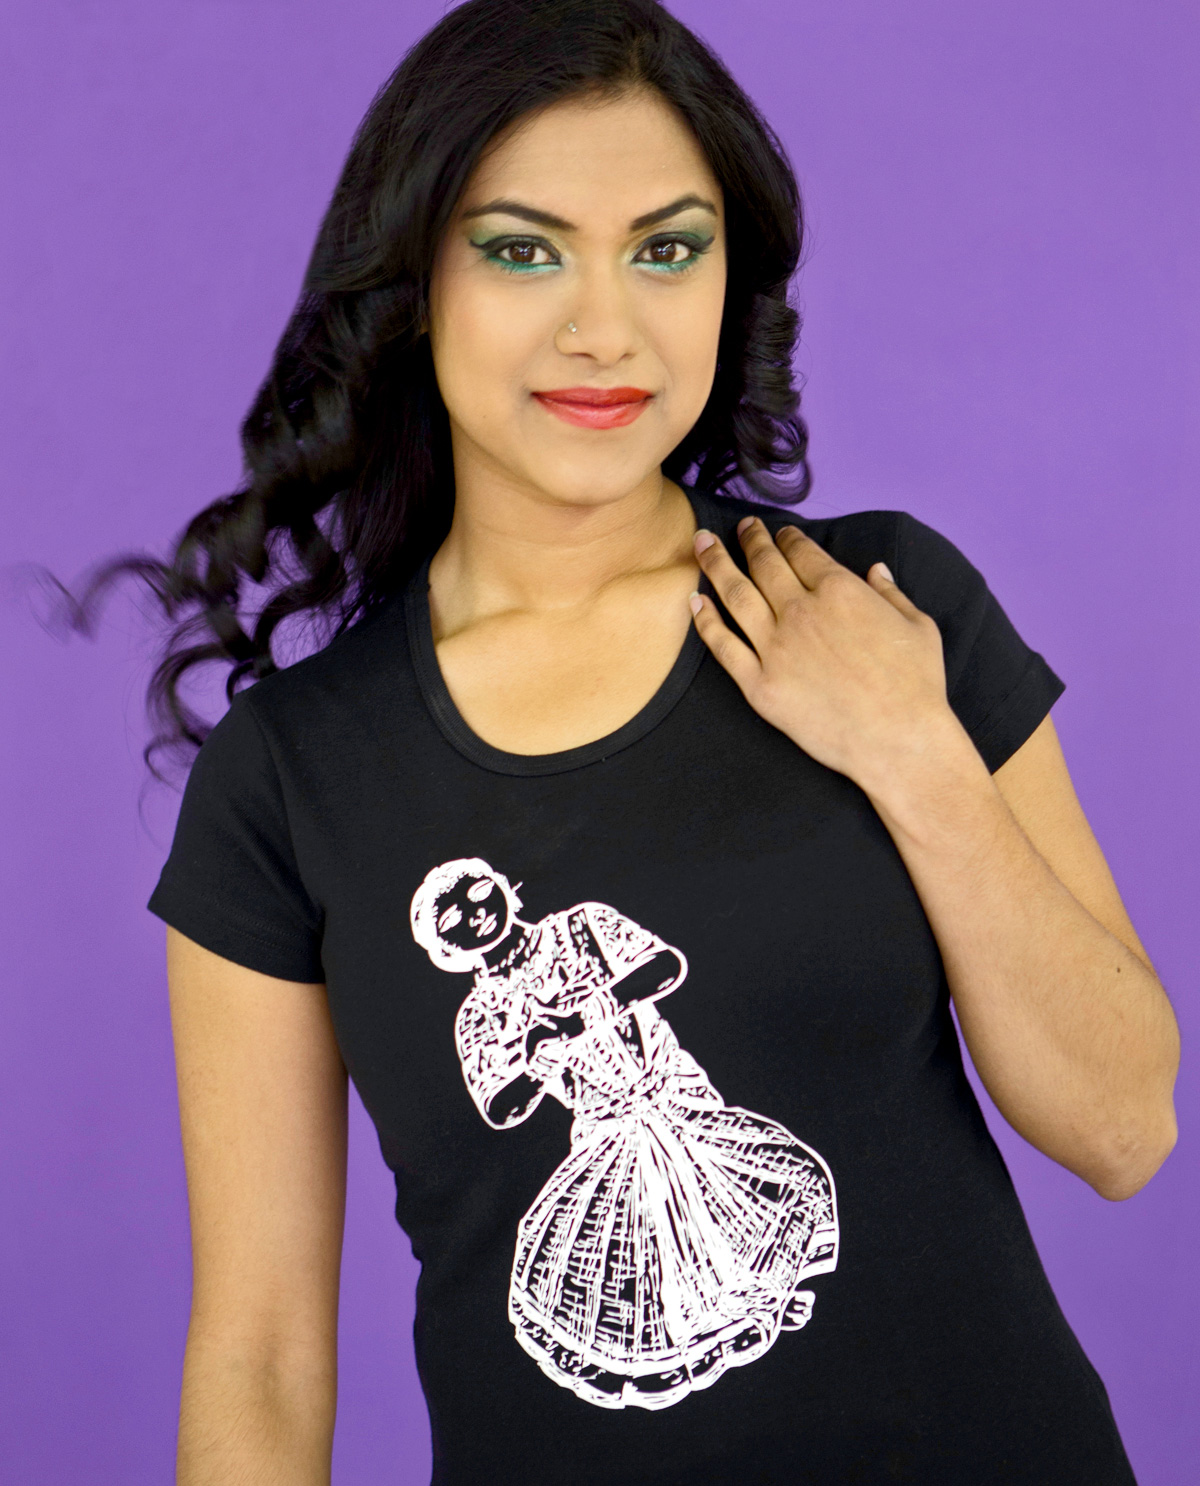 Vintage Indian Folk Dancing Girl graphic design image on front of black capped sleeved t.shirt by Brown Man Clothing Co.